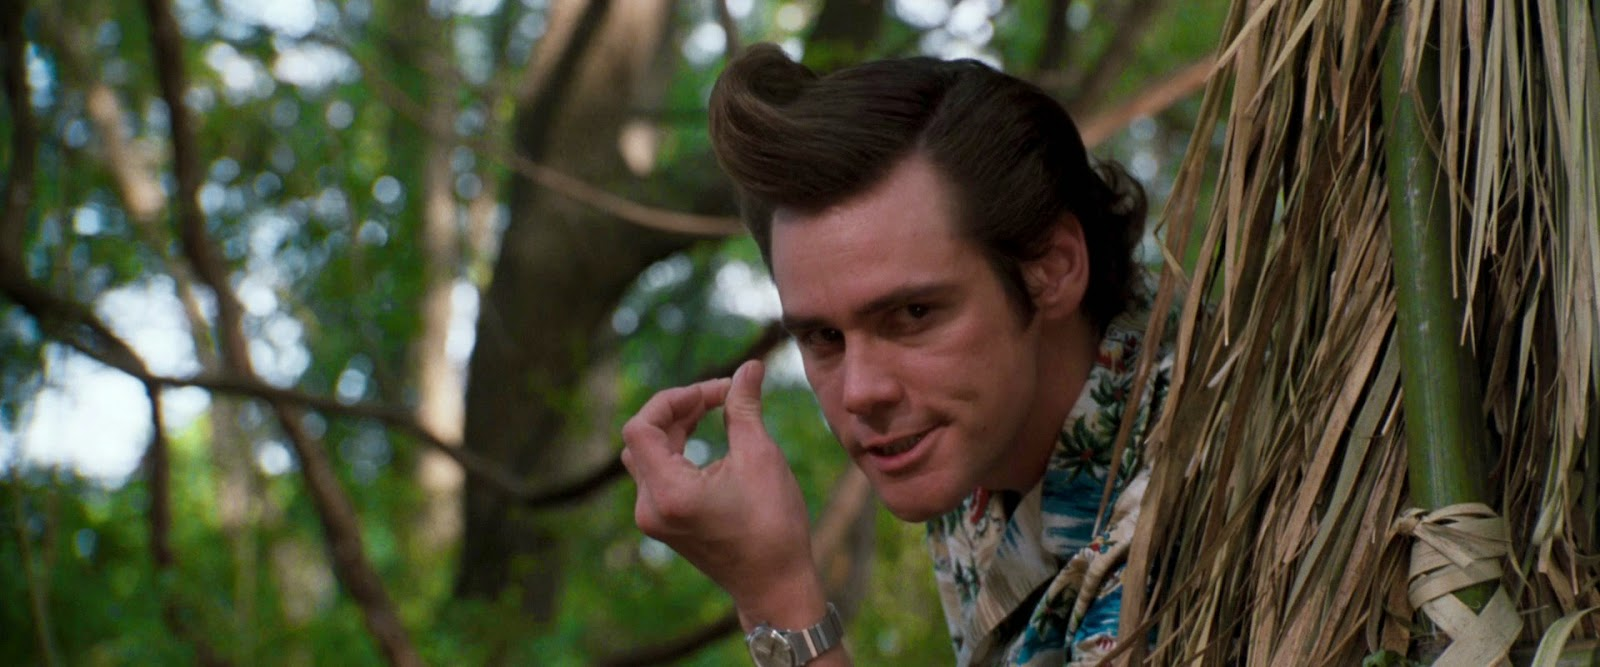 jim-carrey-ace-ventura-2